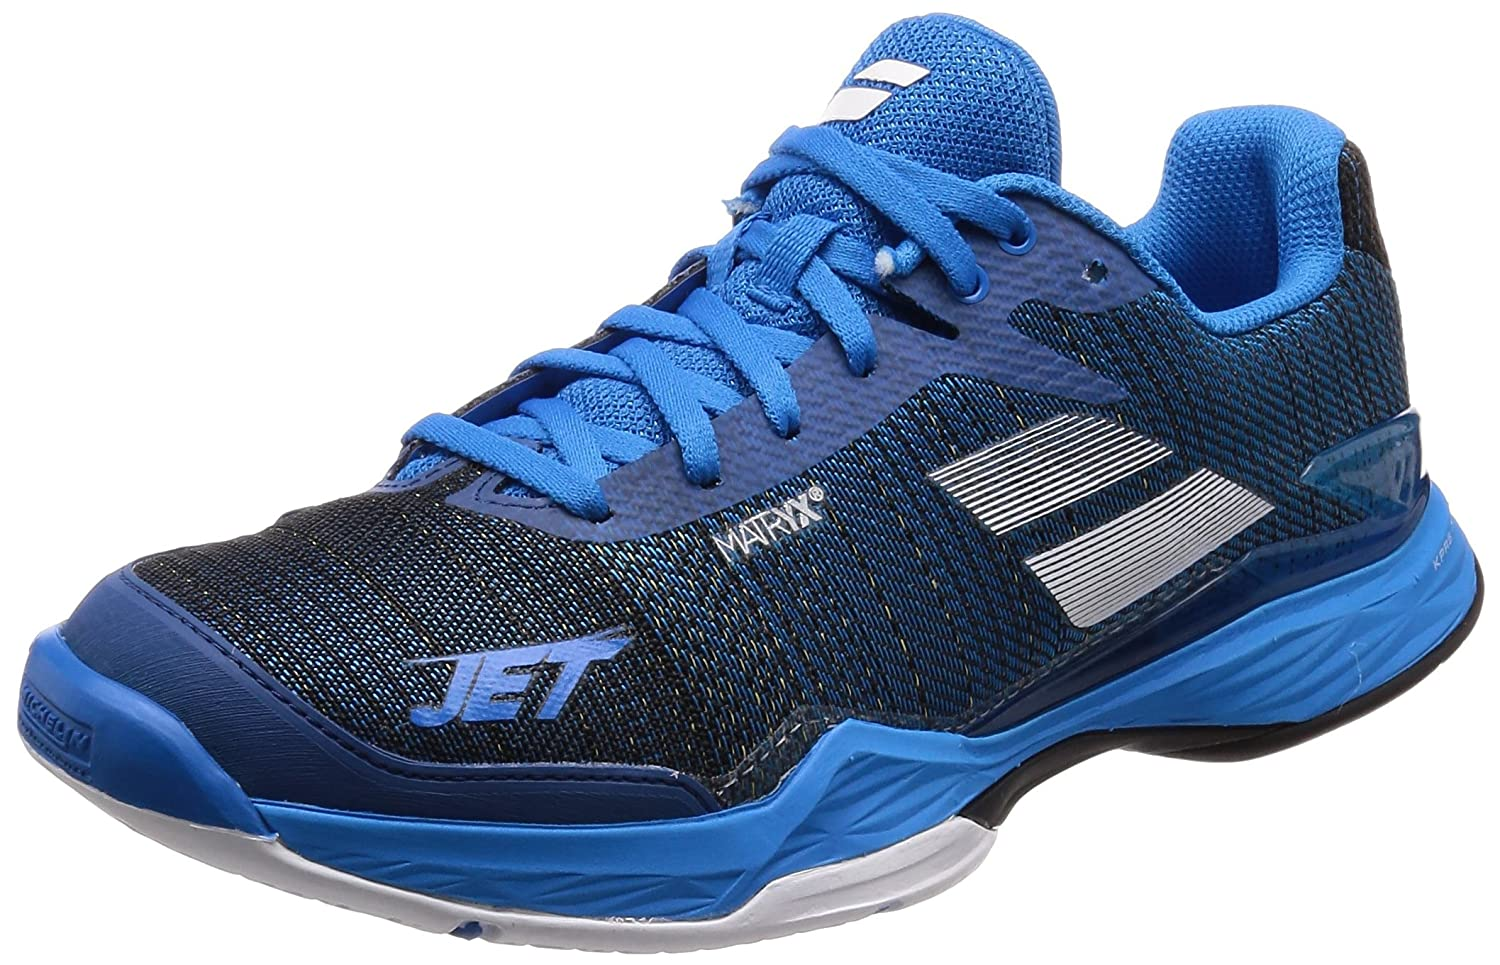 Babolat Jet Mach II Mens Tennis Shoes Blue/Black B079GYK3L8 8 D(M) US|Blue